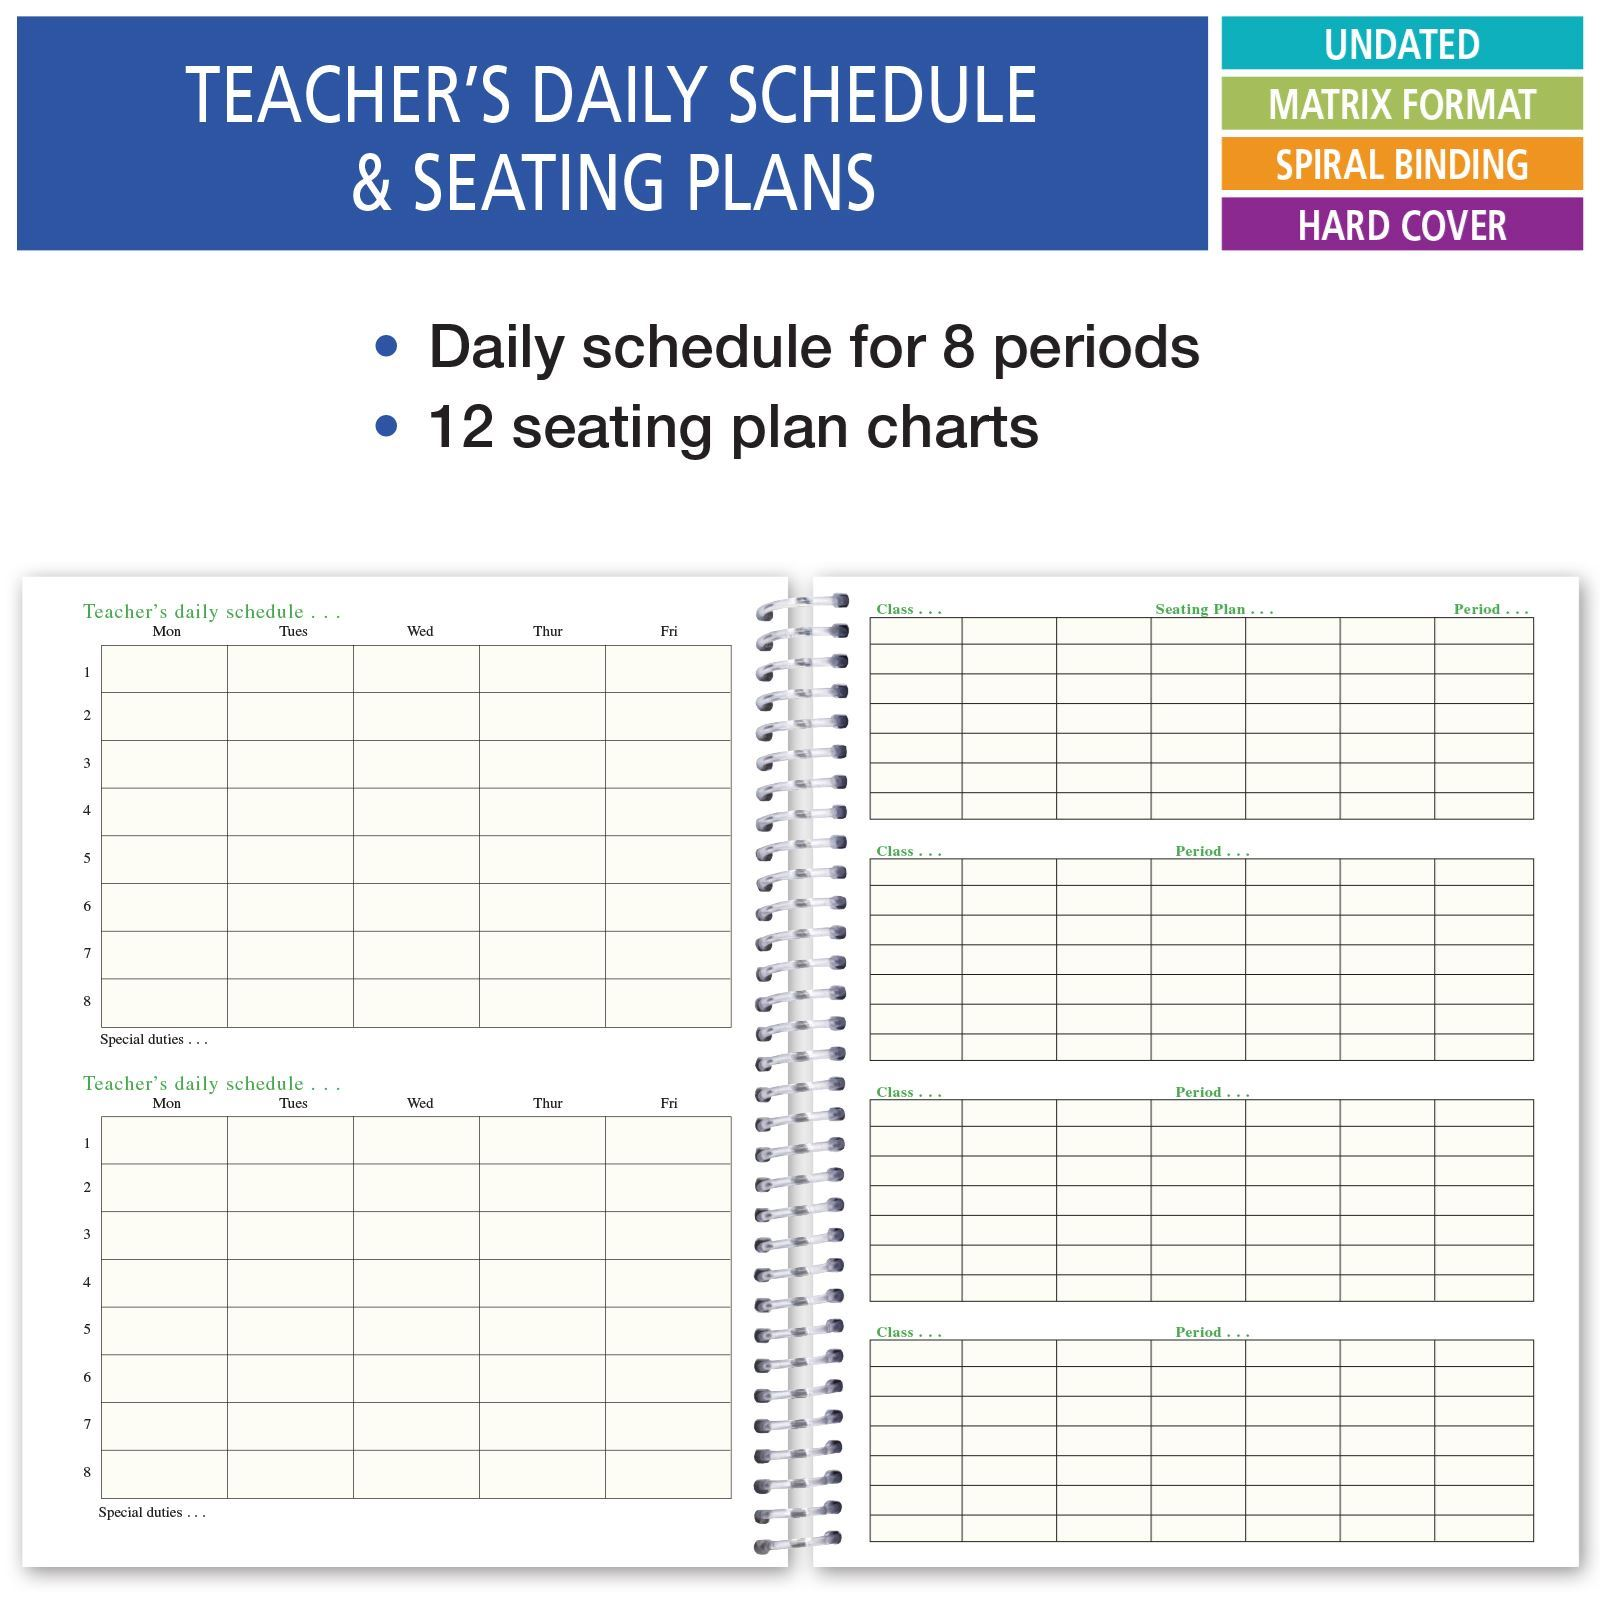 Picture of HARDCOVER 6 Period Teacher Lesson Plan